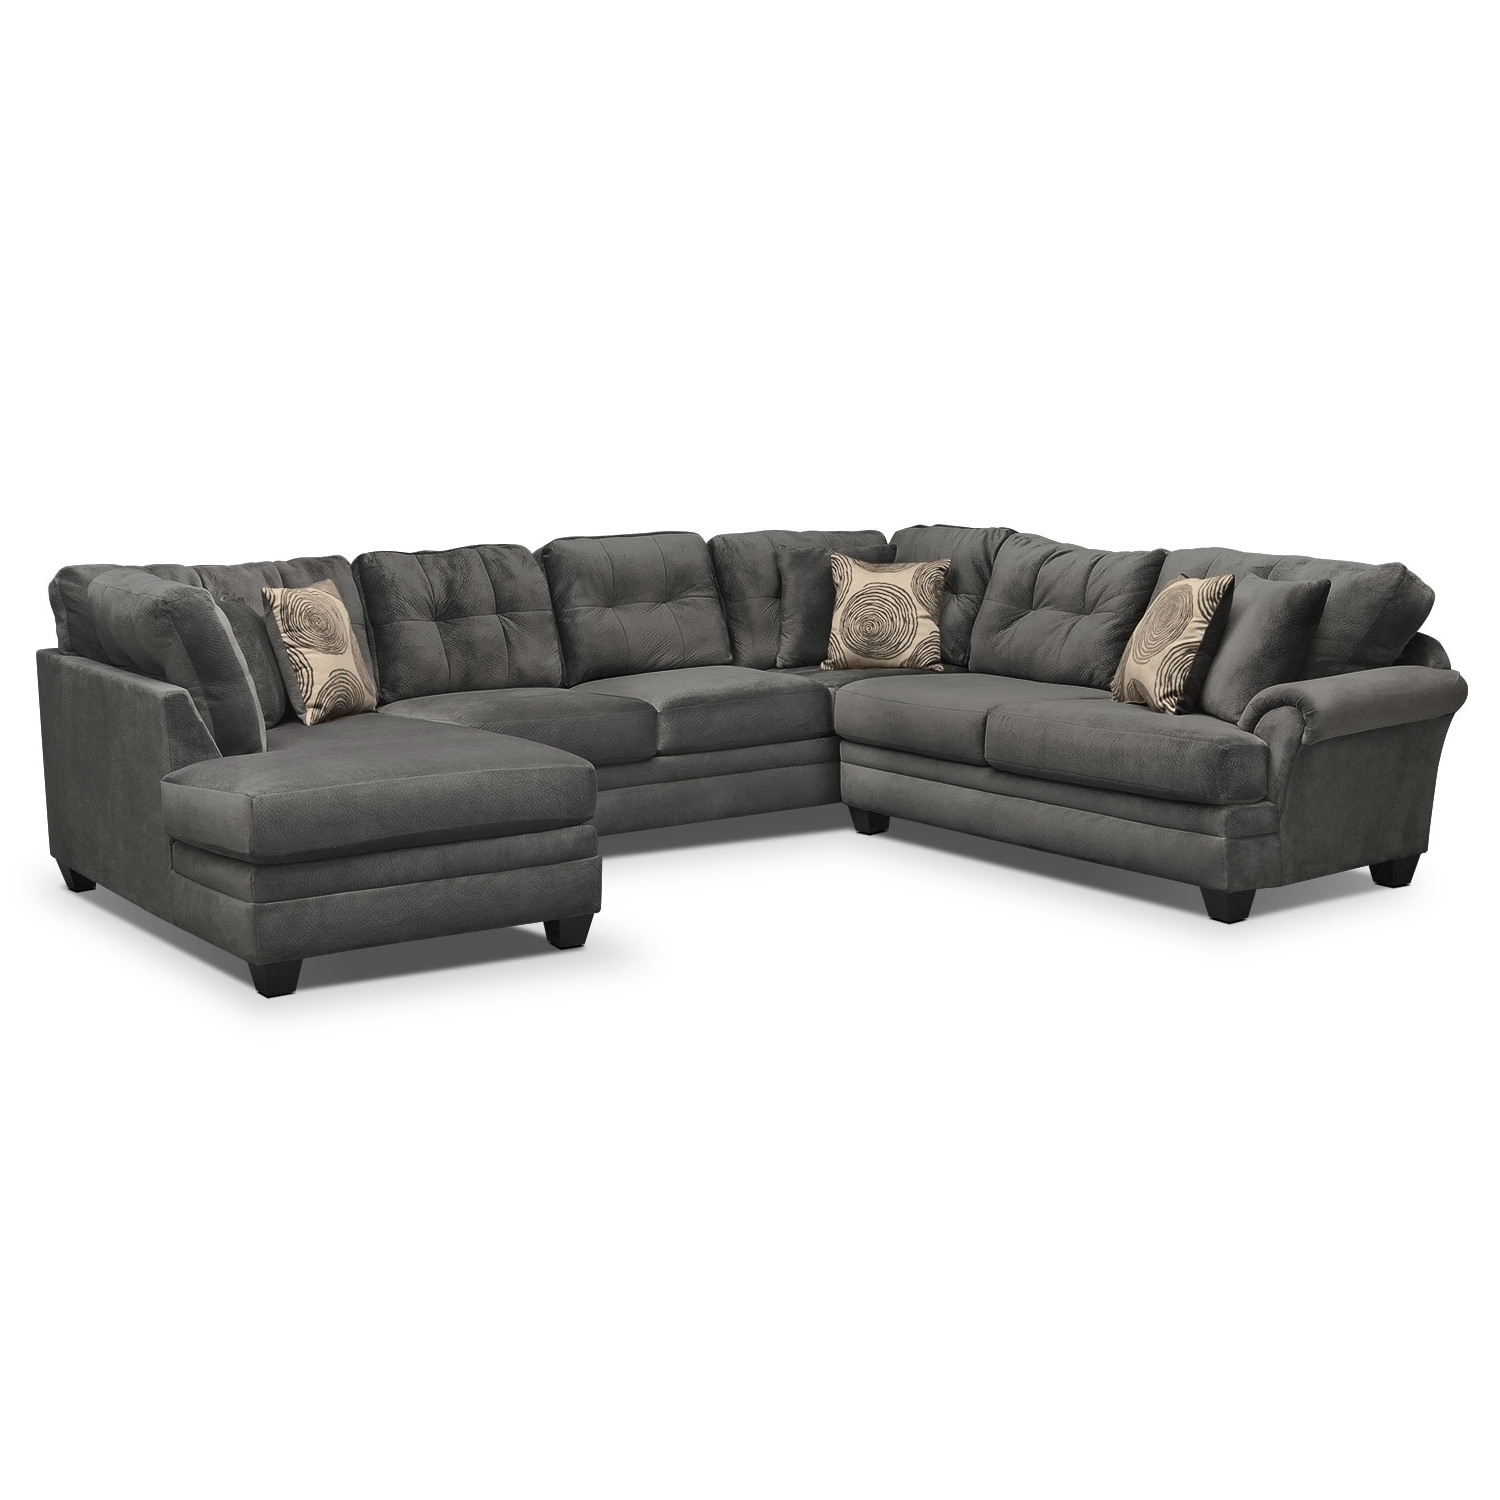 Couch And Sofa Set With Best And Newest Sectional Sofas At Buffalo Ny (View 8 of 20)